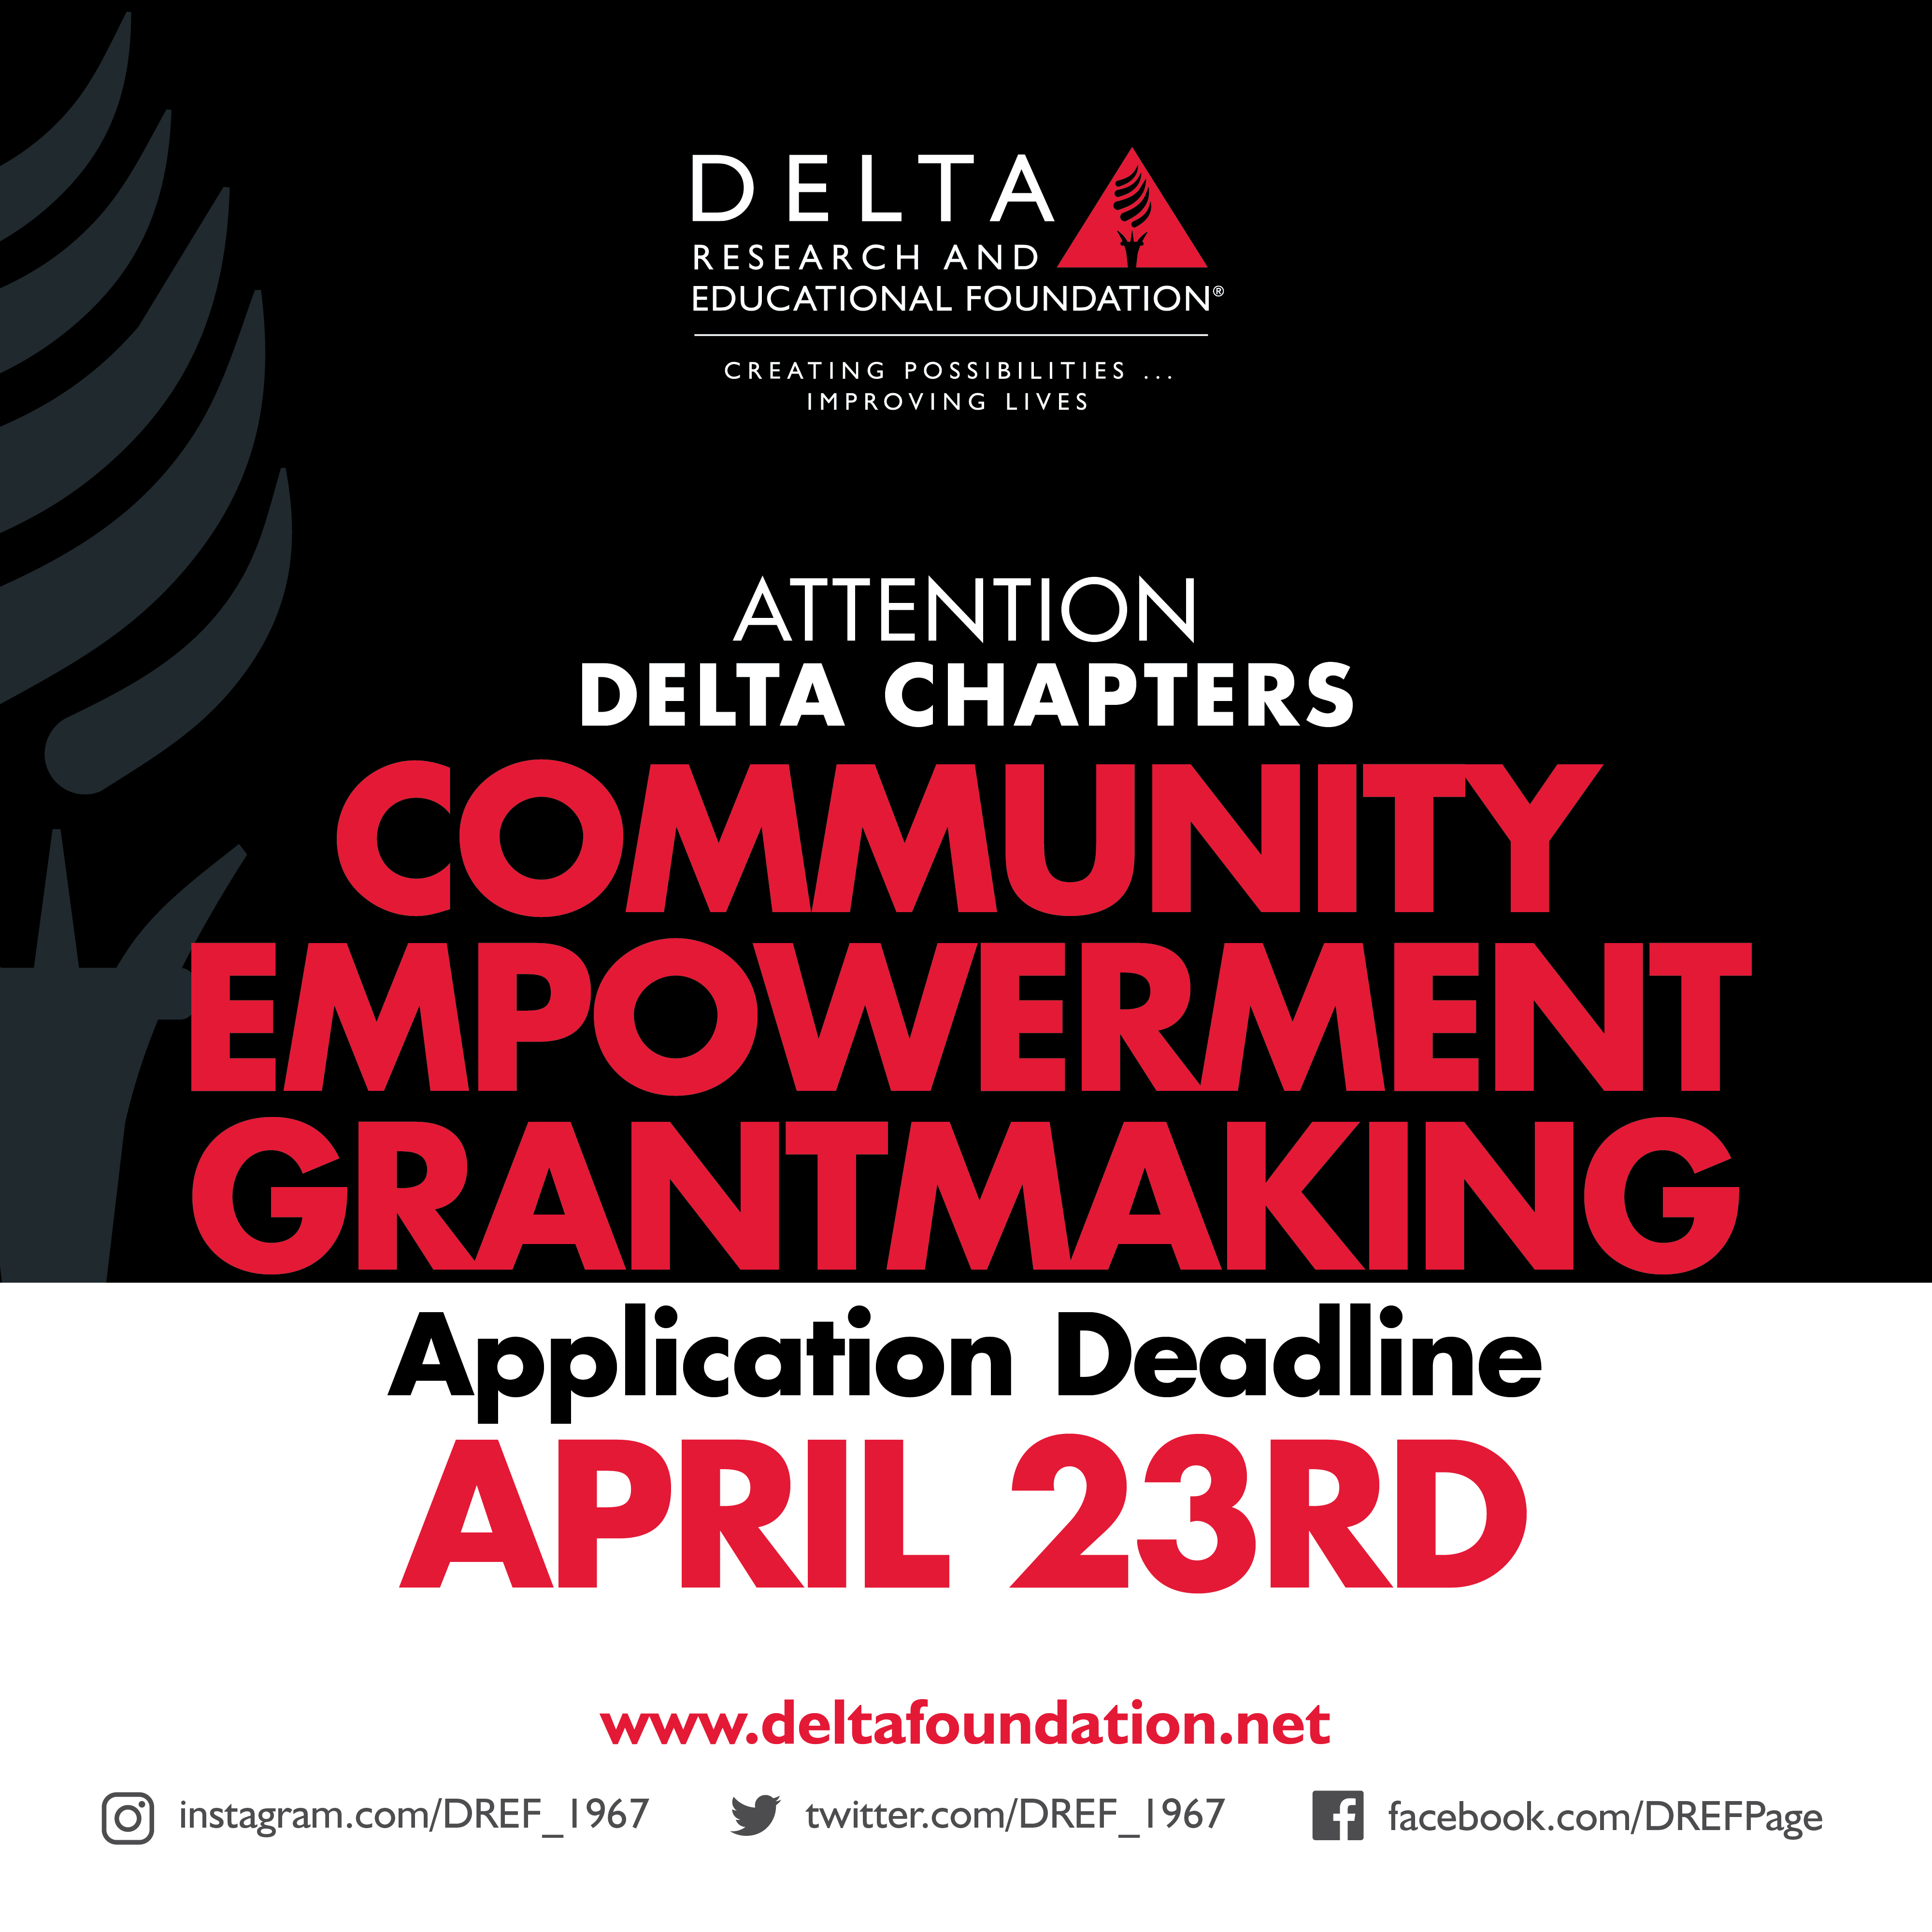 Attention Delta Chapters - Annual Community Empowerment Grantmaking Application Deadline is extended to April 23rd.